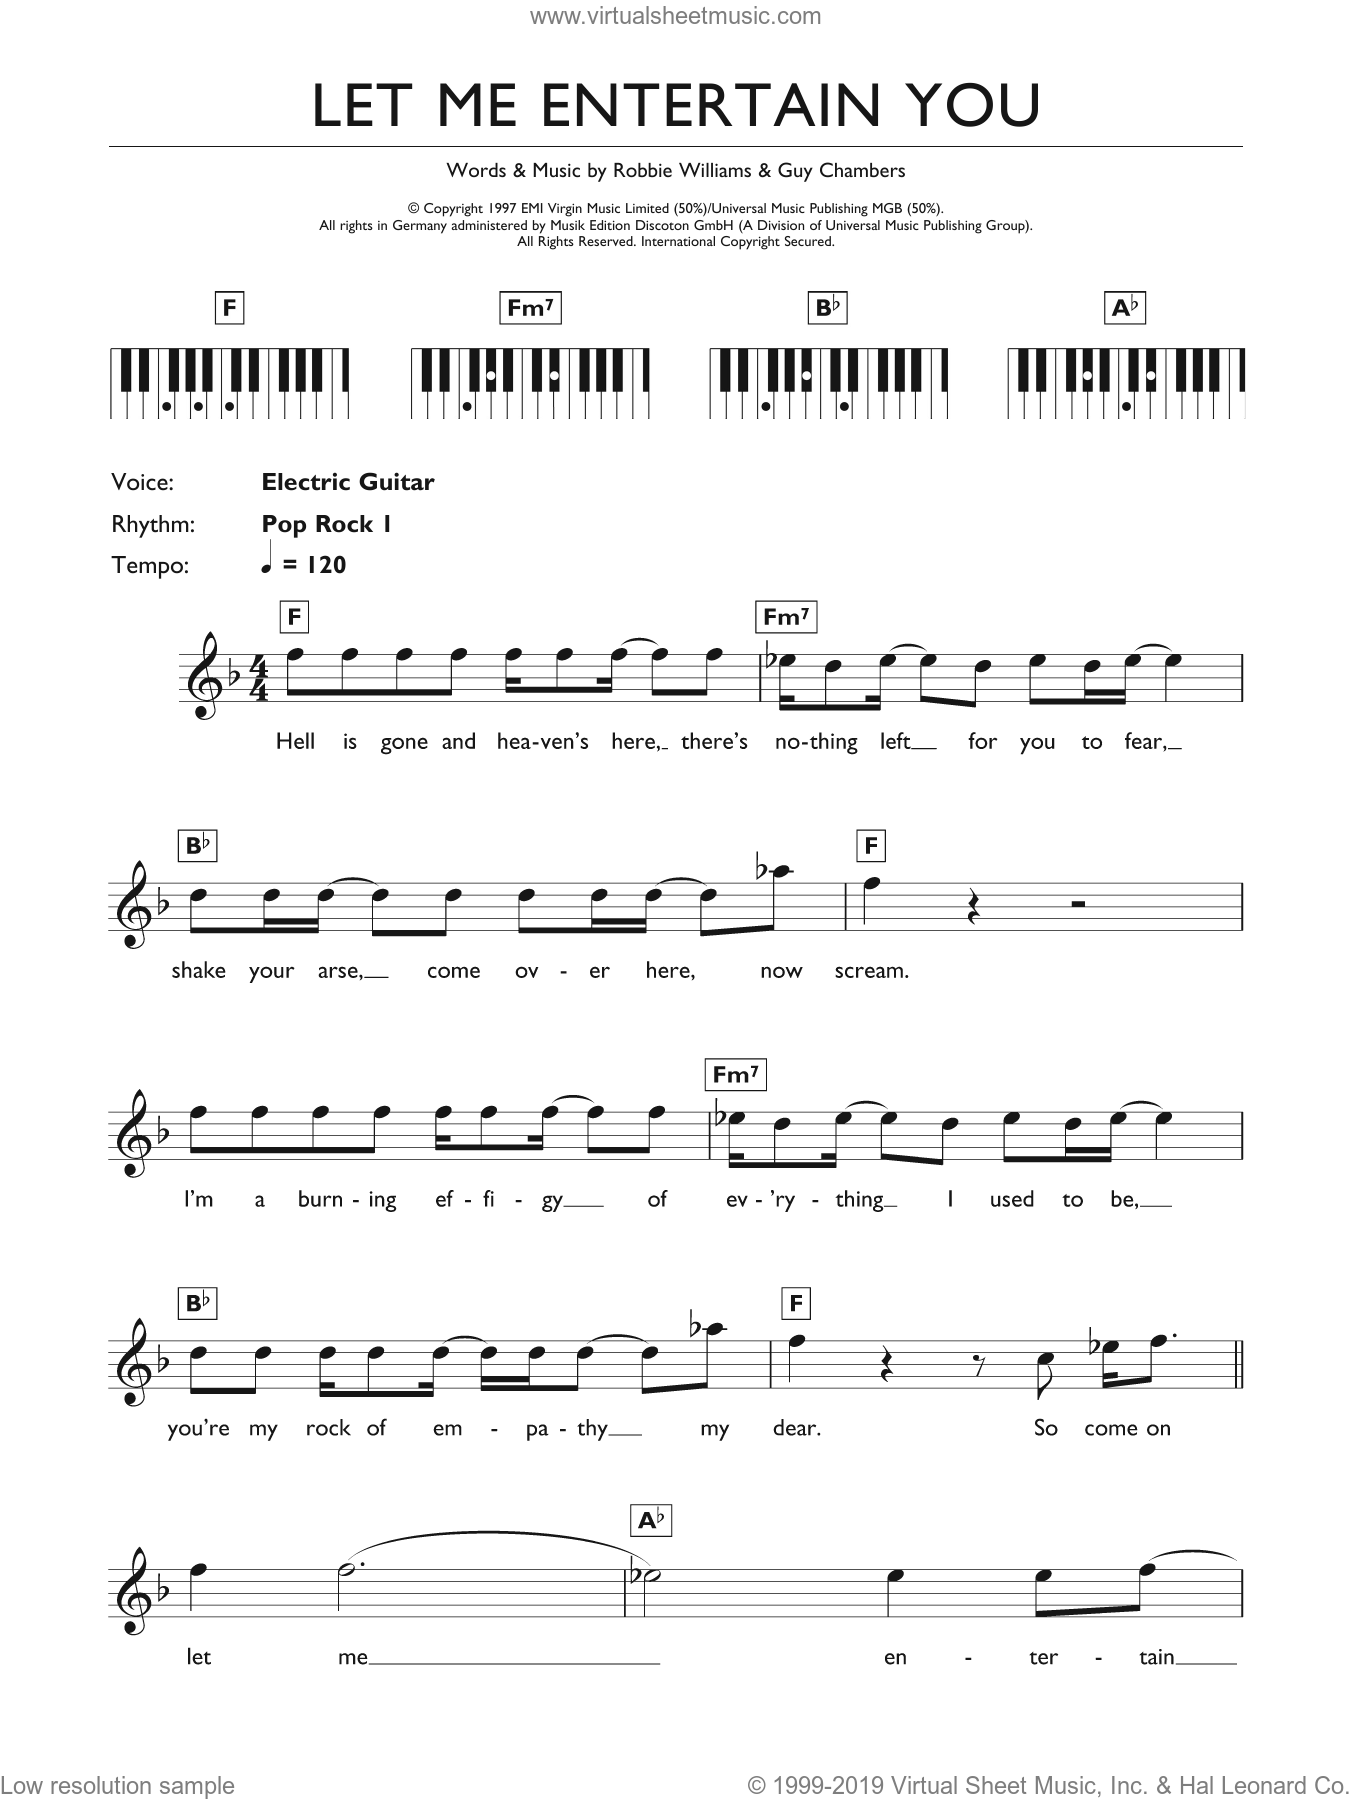 Let Me Entertain You sheet music for piano solo (chords, lyrics, melody) by Robbie Williams. Score Image Preview.